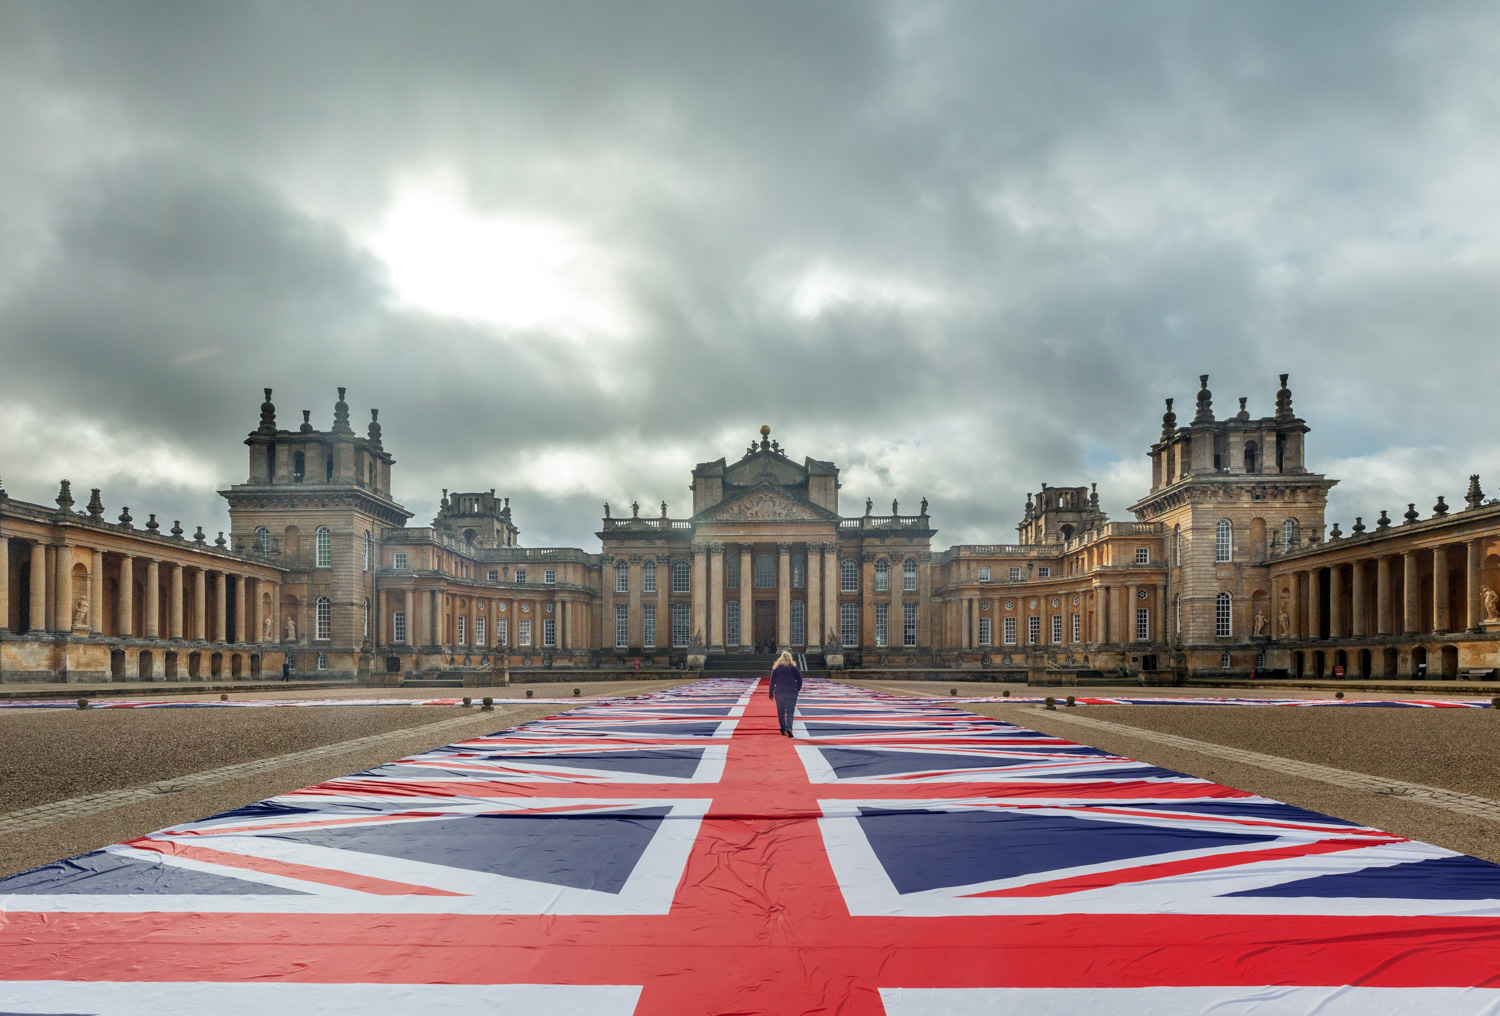 Image: Blenheim Palace, Oxford